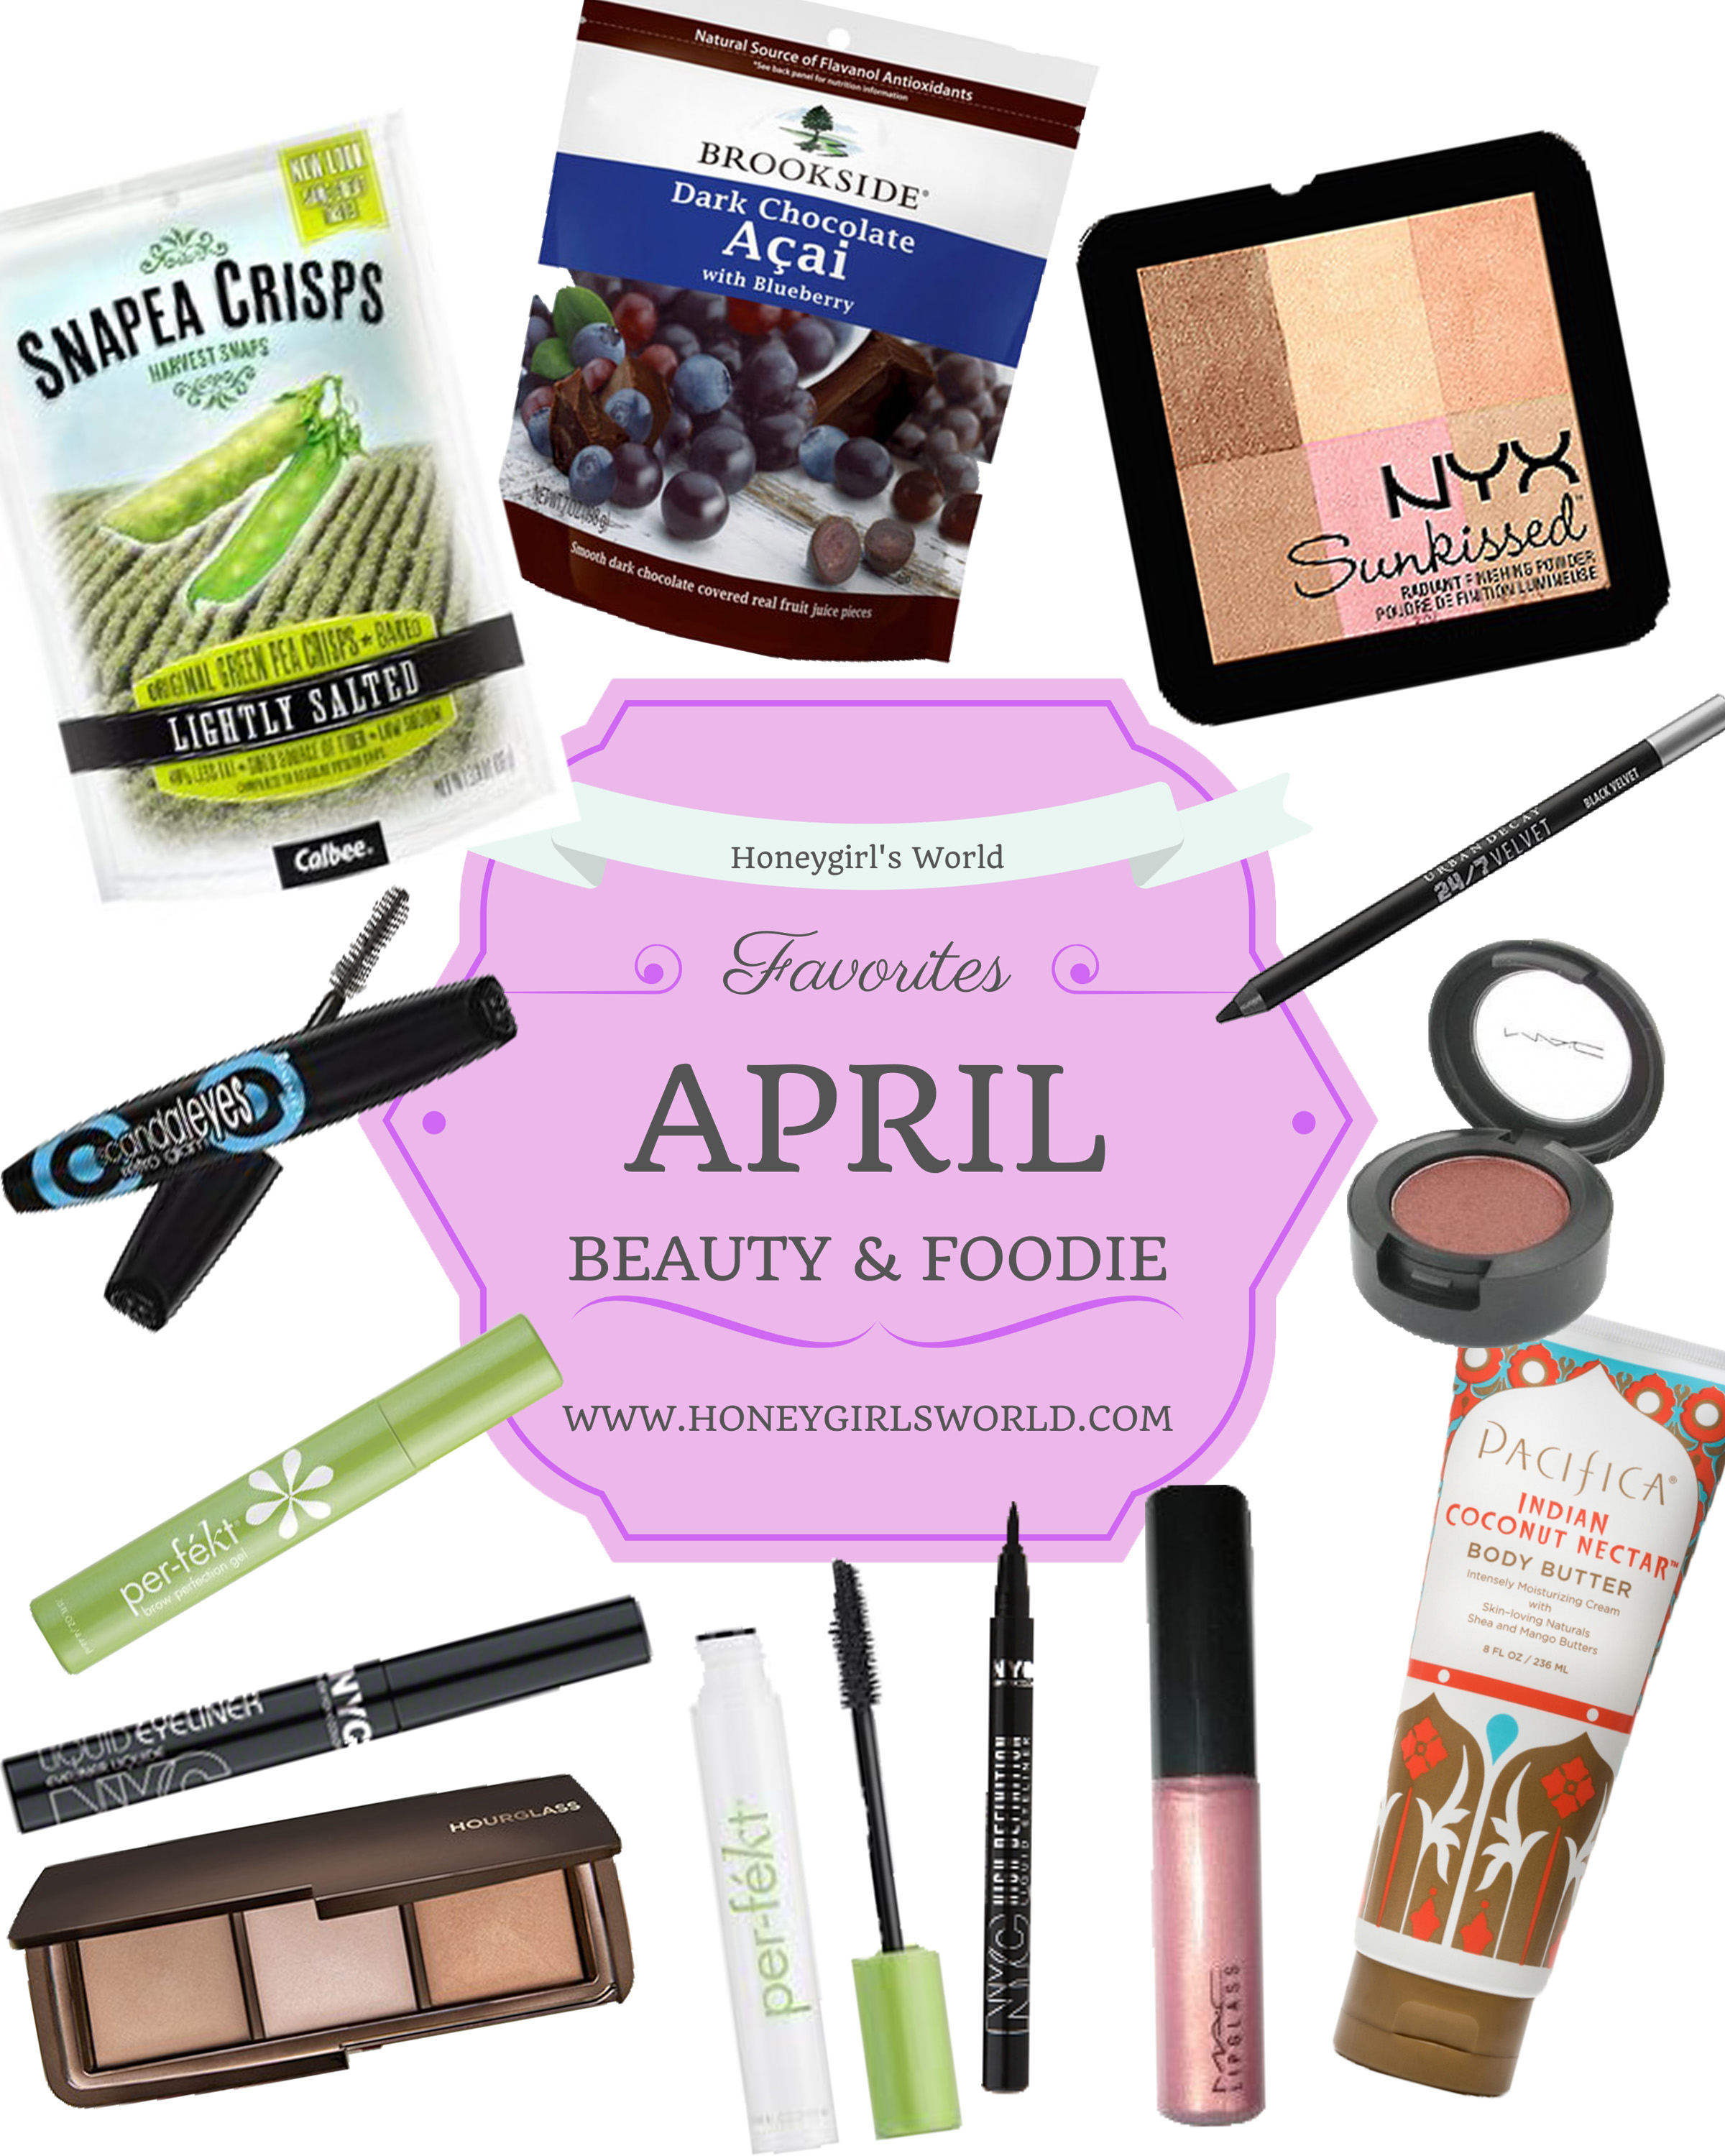 April Beauty and Foodie Favorites 2014